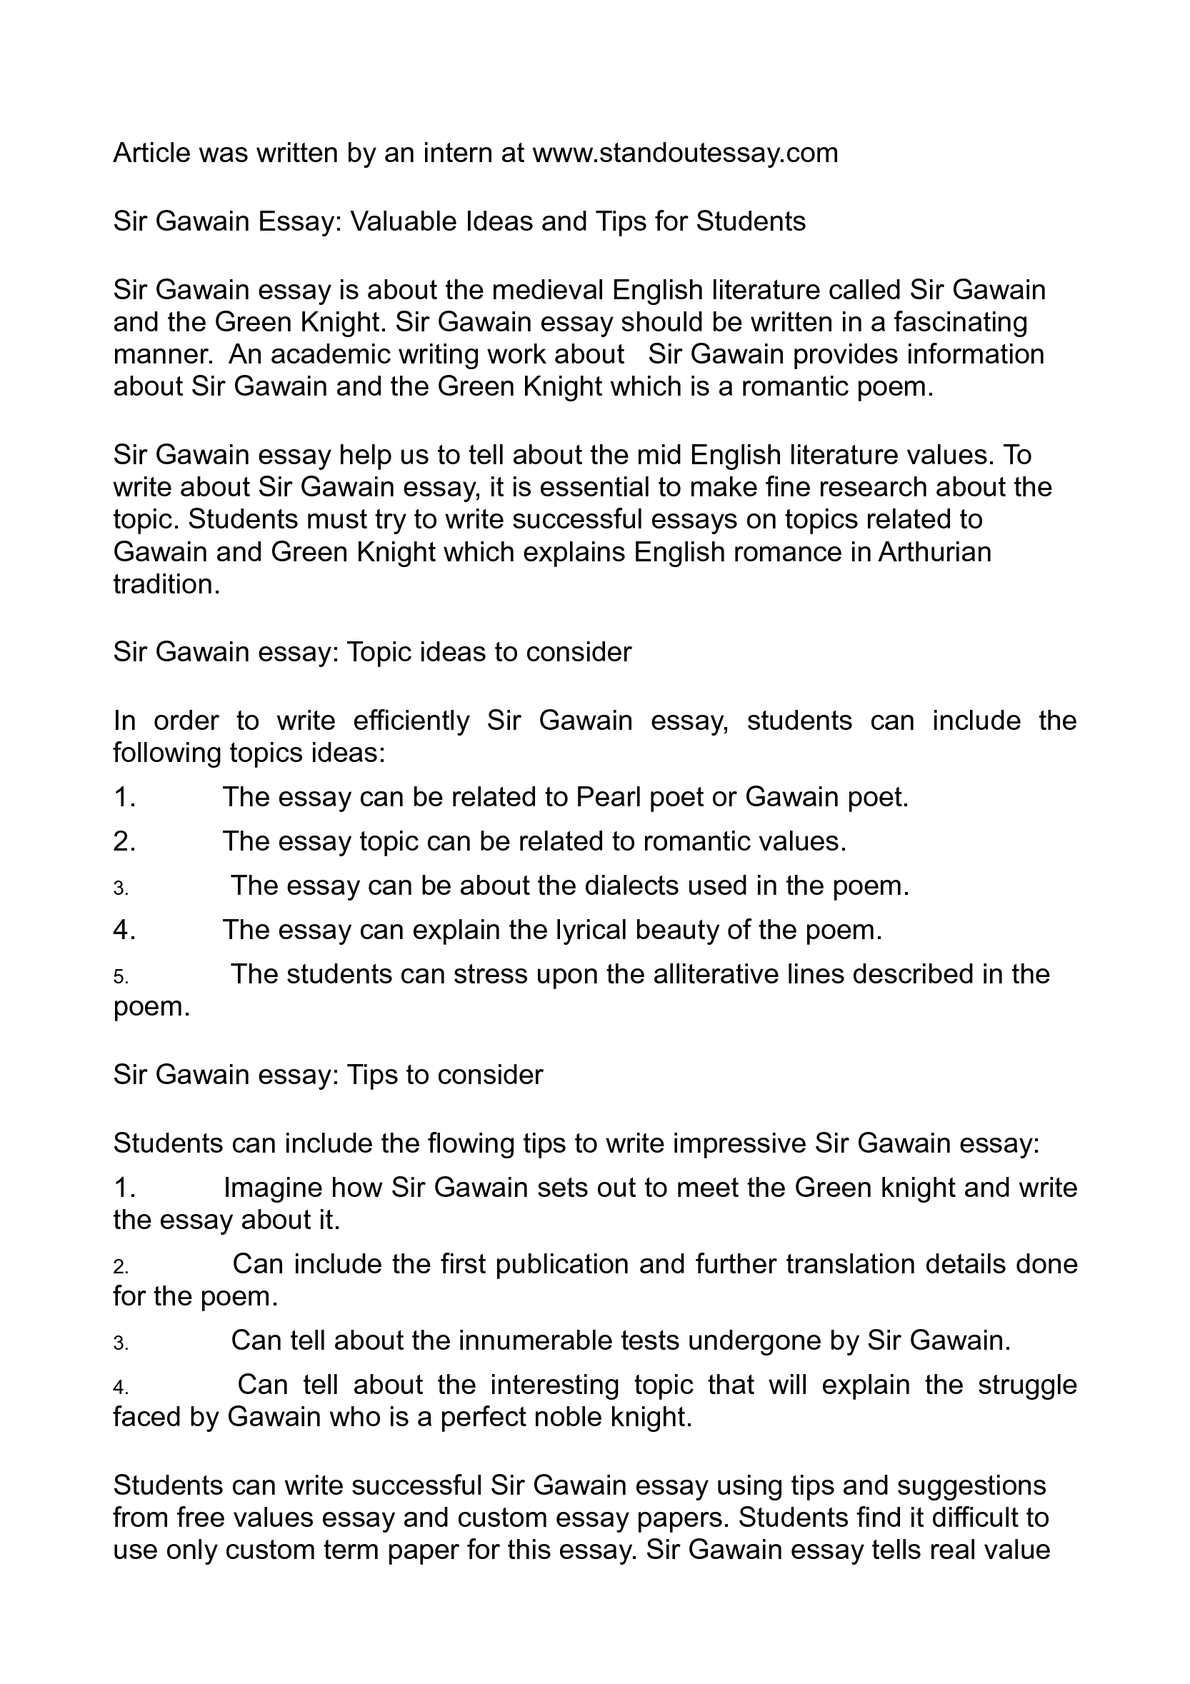 calamo   sir gawain essay valuable ideas and tips for students